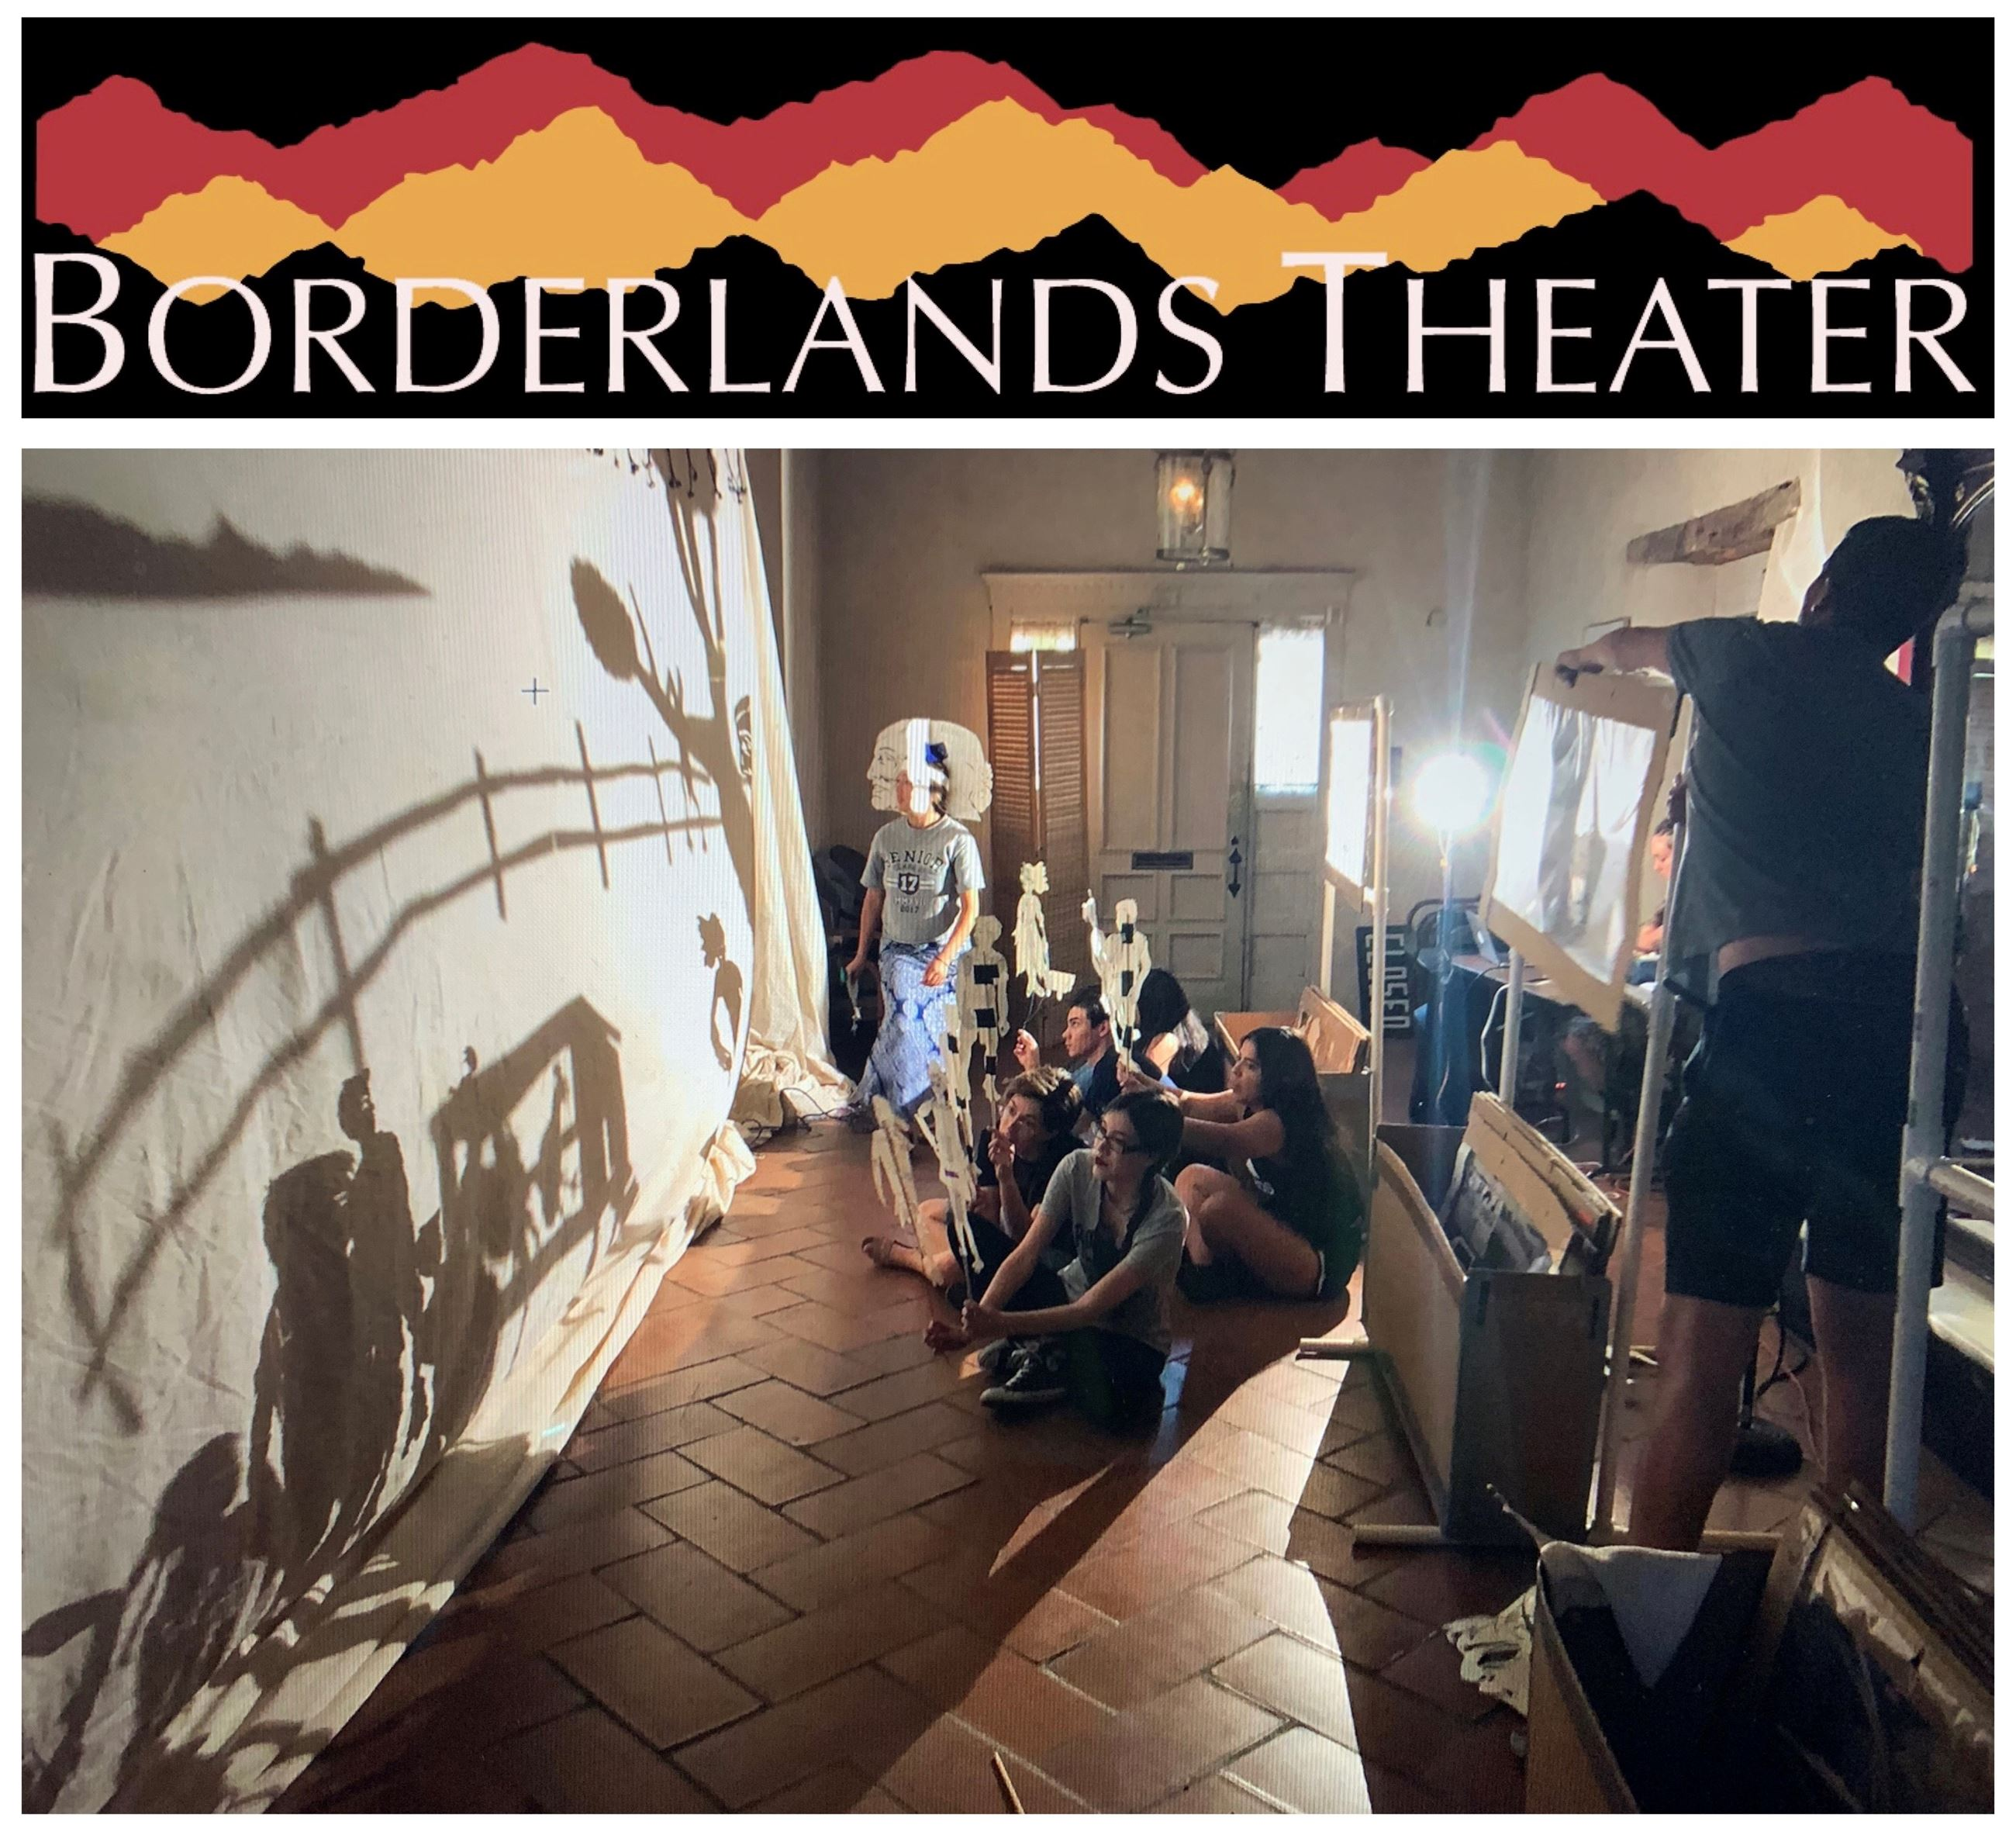 Borderlands Theater